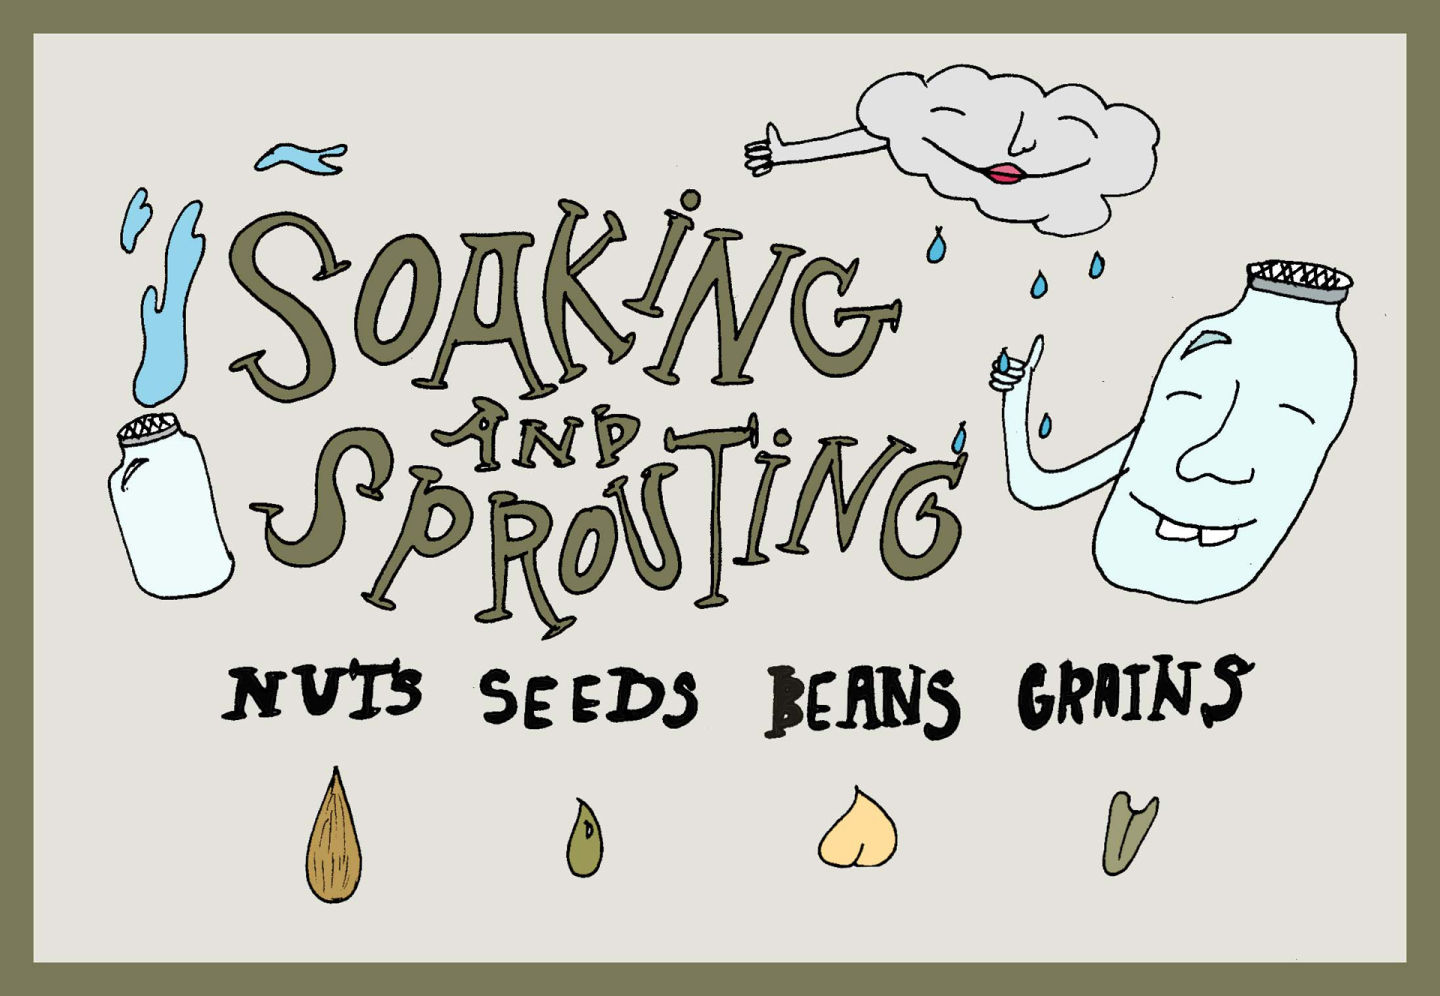 An Illustrated Guide: Benefits to Soaking and Sprouting Legumes, Grains and Seeds